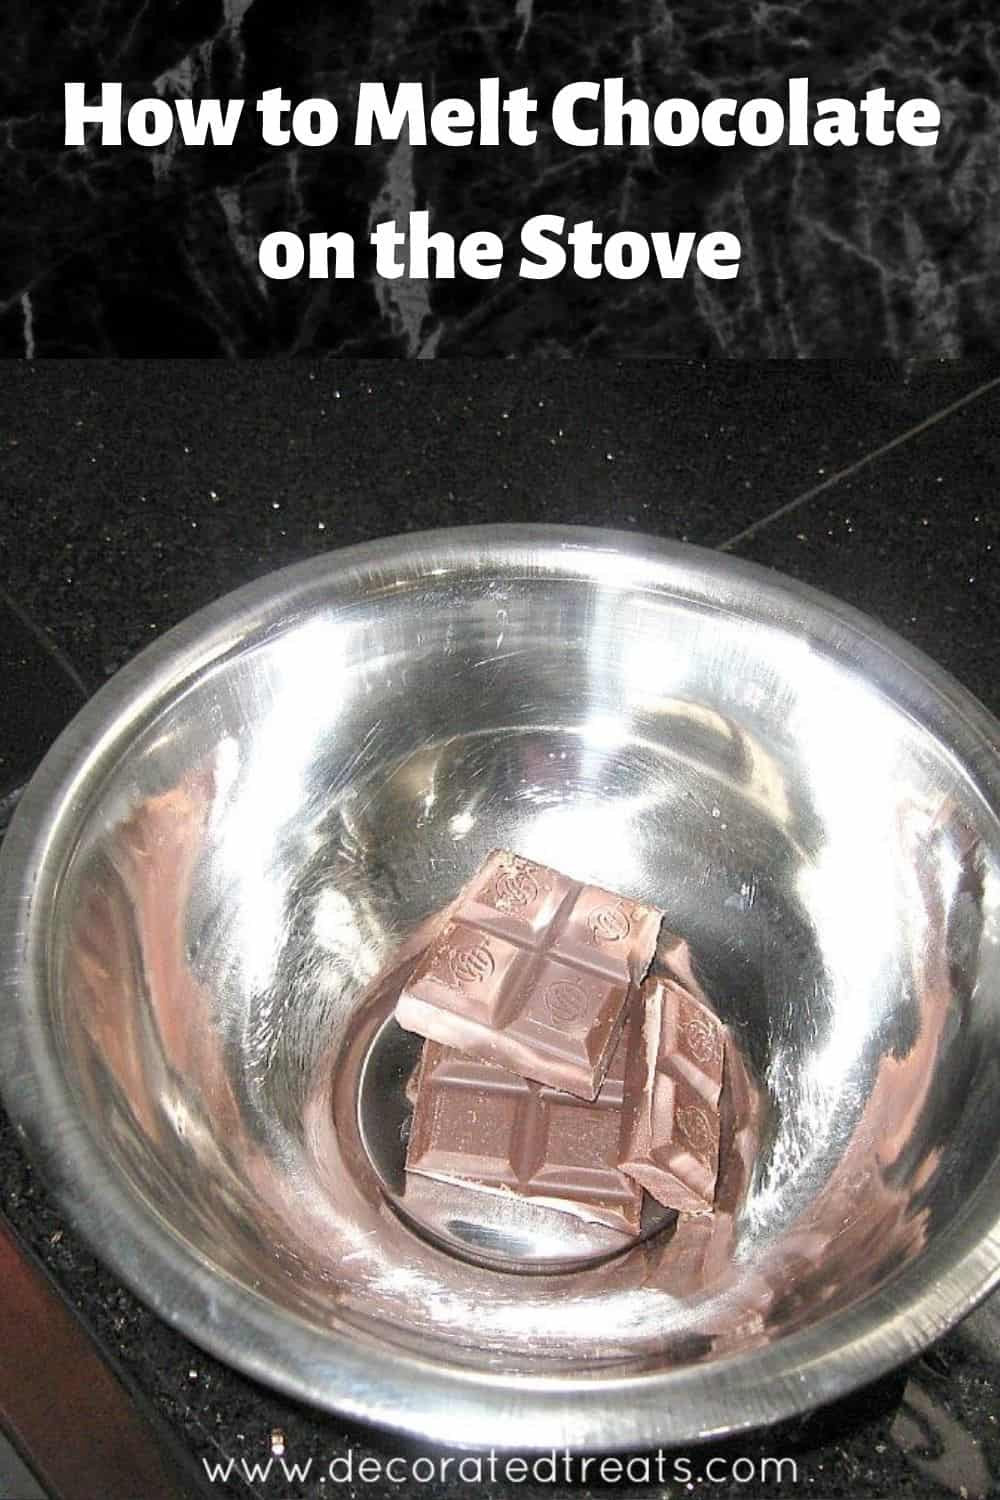 A stainless steel bowl with chopped chocolate